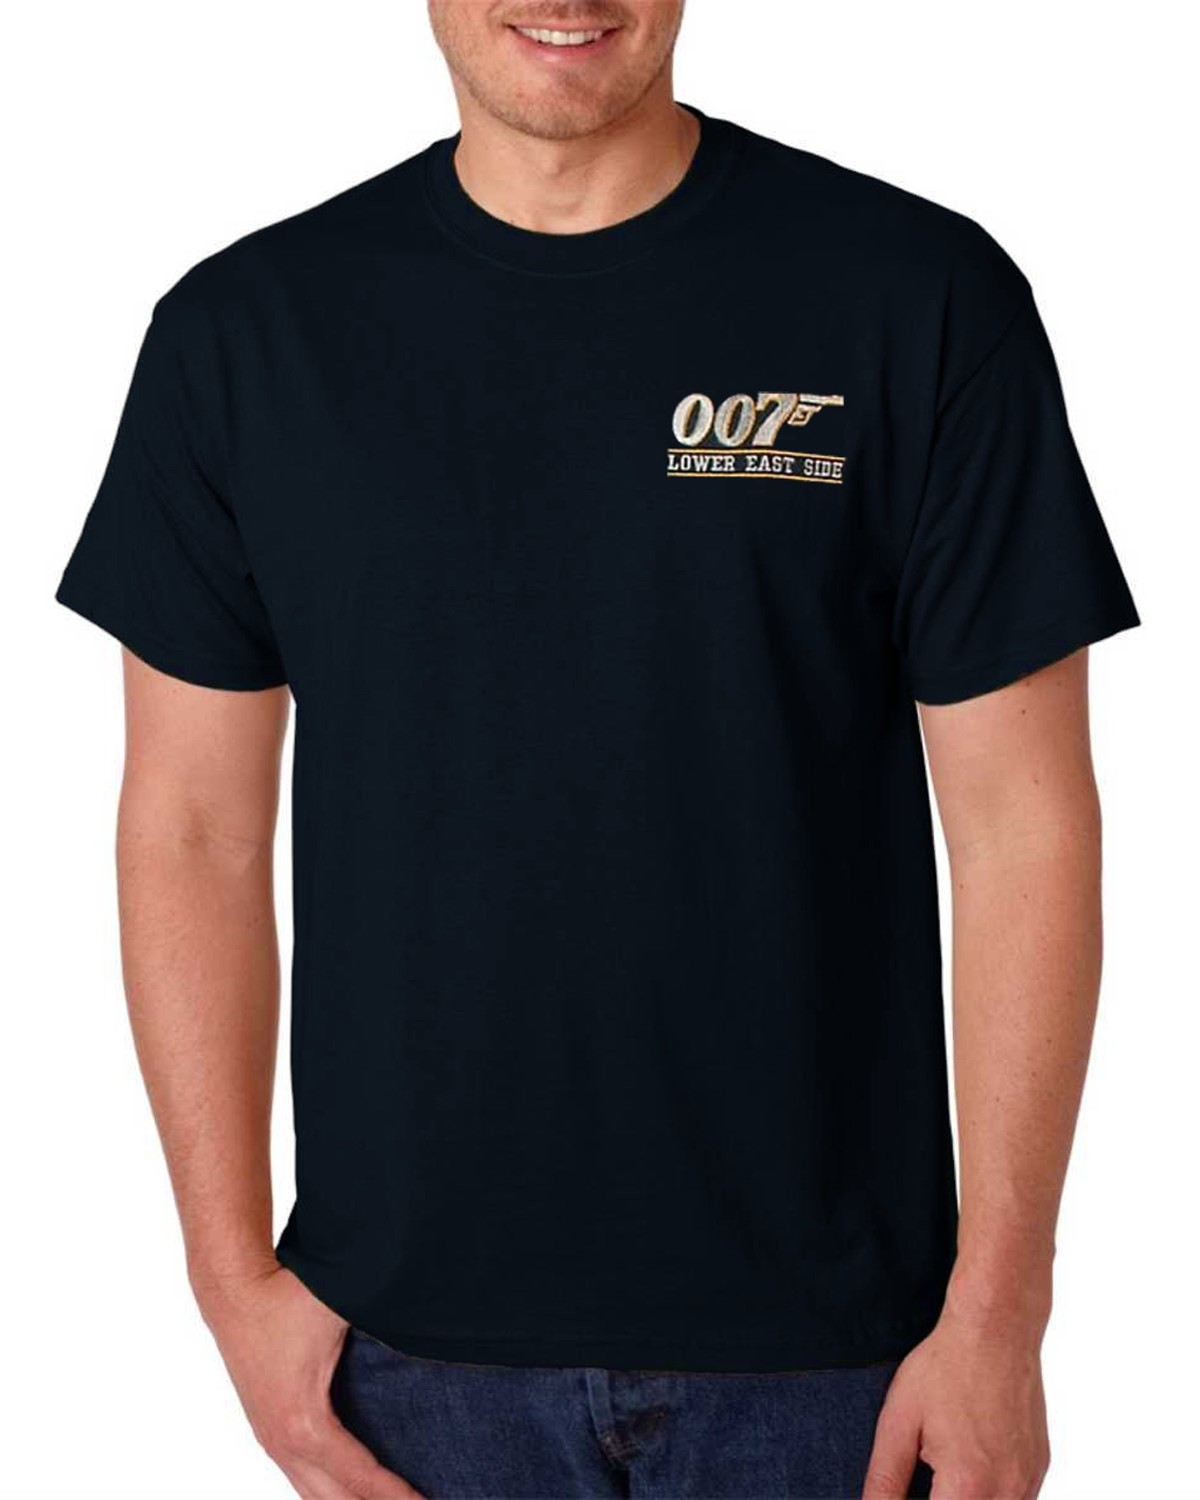 007 Lower East Side t-shirt (Navy)